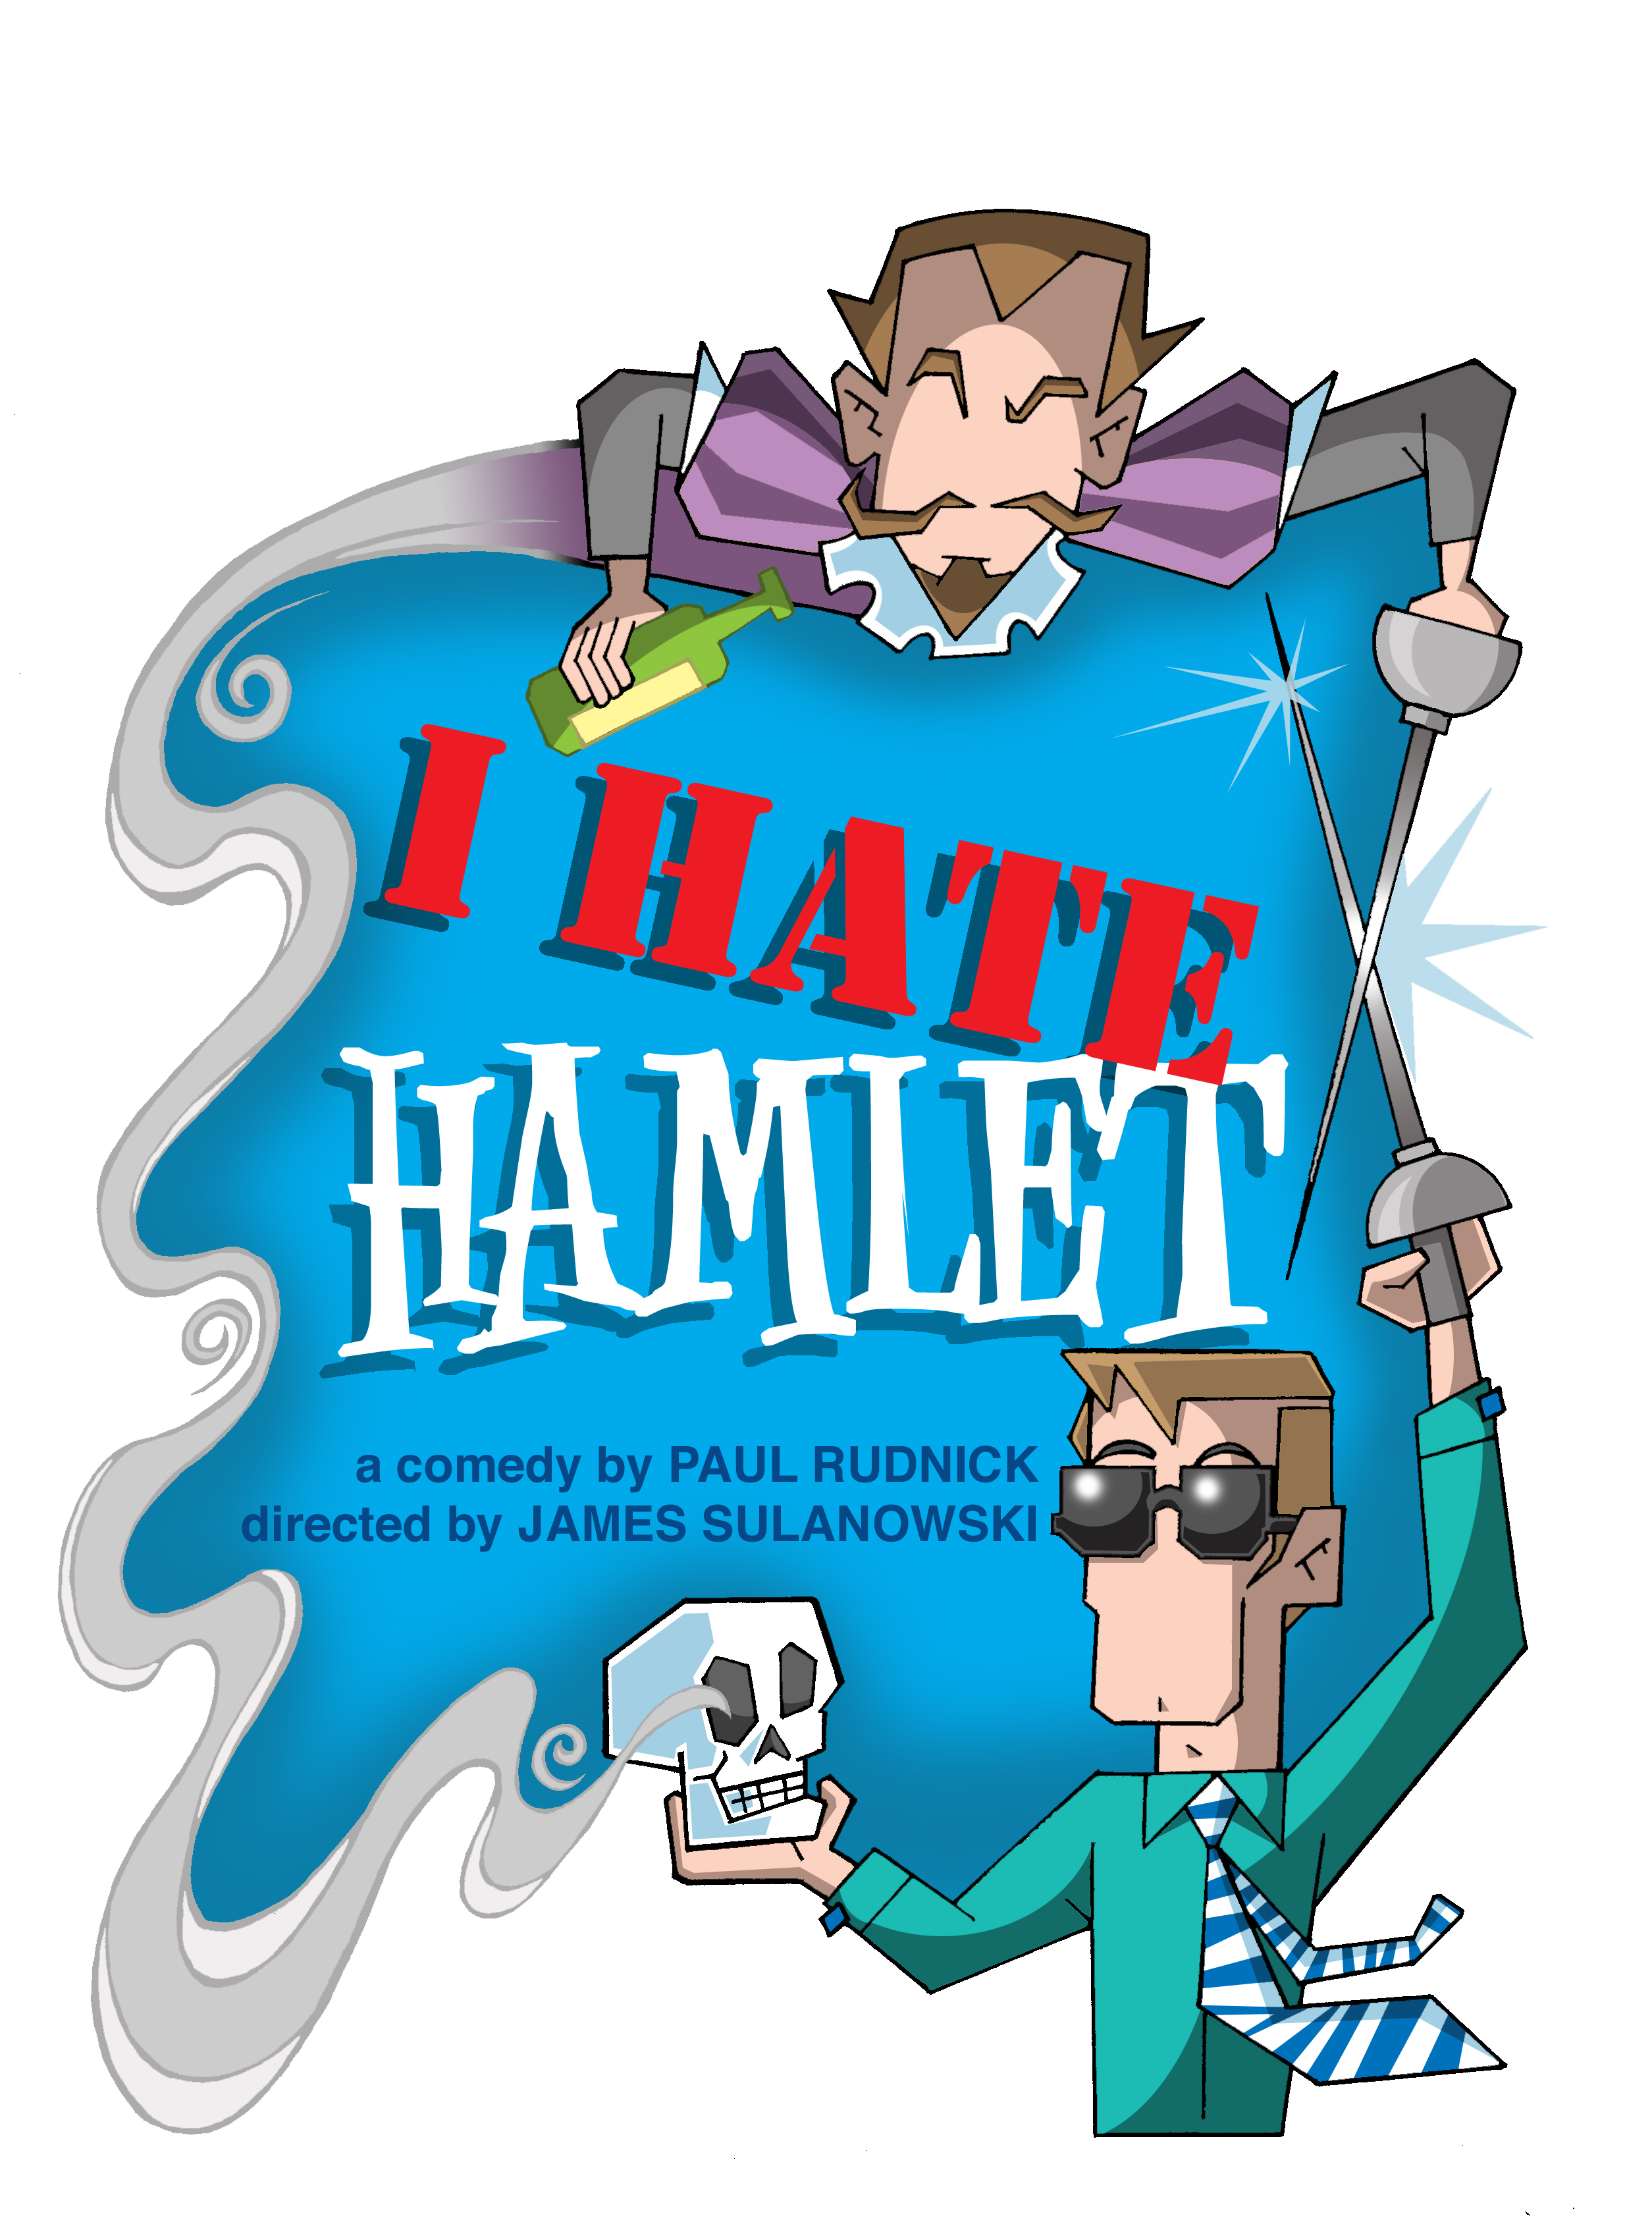 <div class='slider_caption'> <h1>I Hate Hamlet Opens in May! Tickets Available NOW!</h1><a class='slider-readmore' href='http://attleborocommunitytheatre.com/?page_id=71'>More Info!</a> </div>